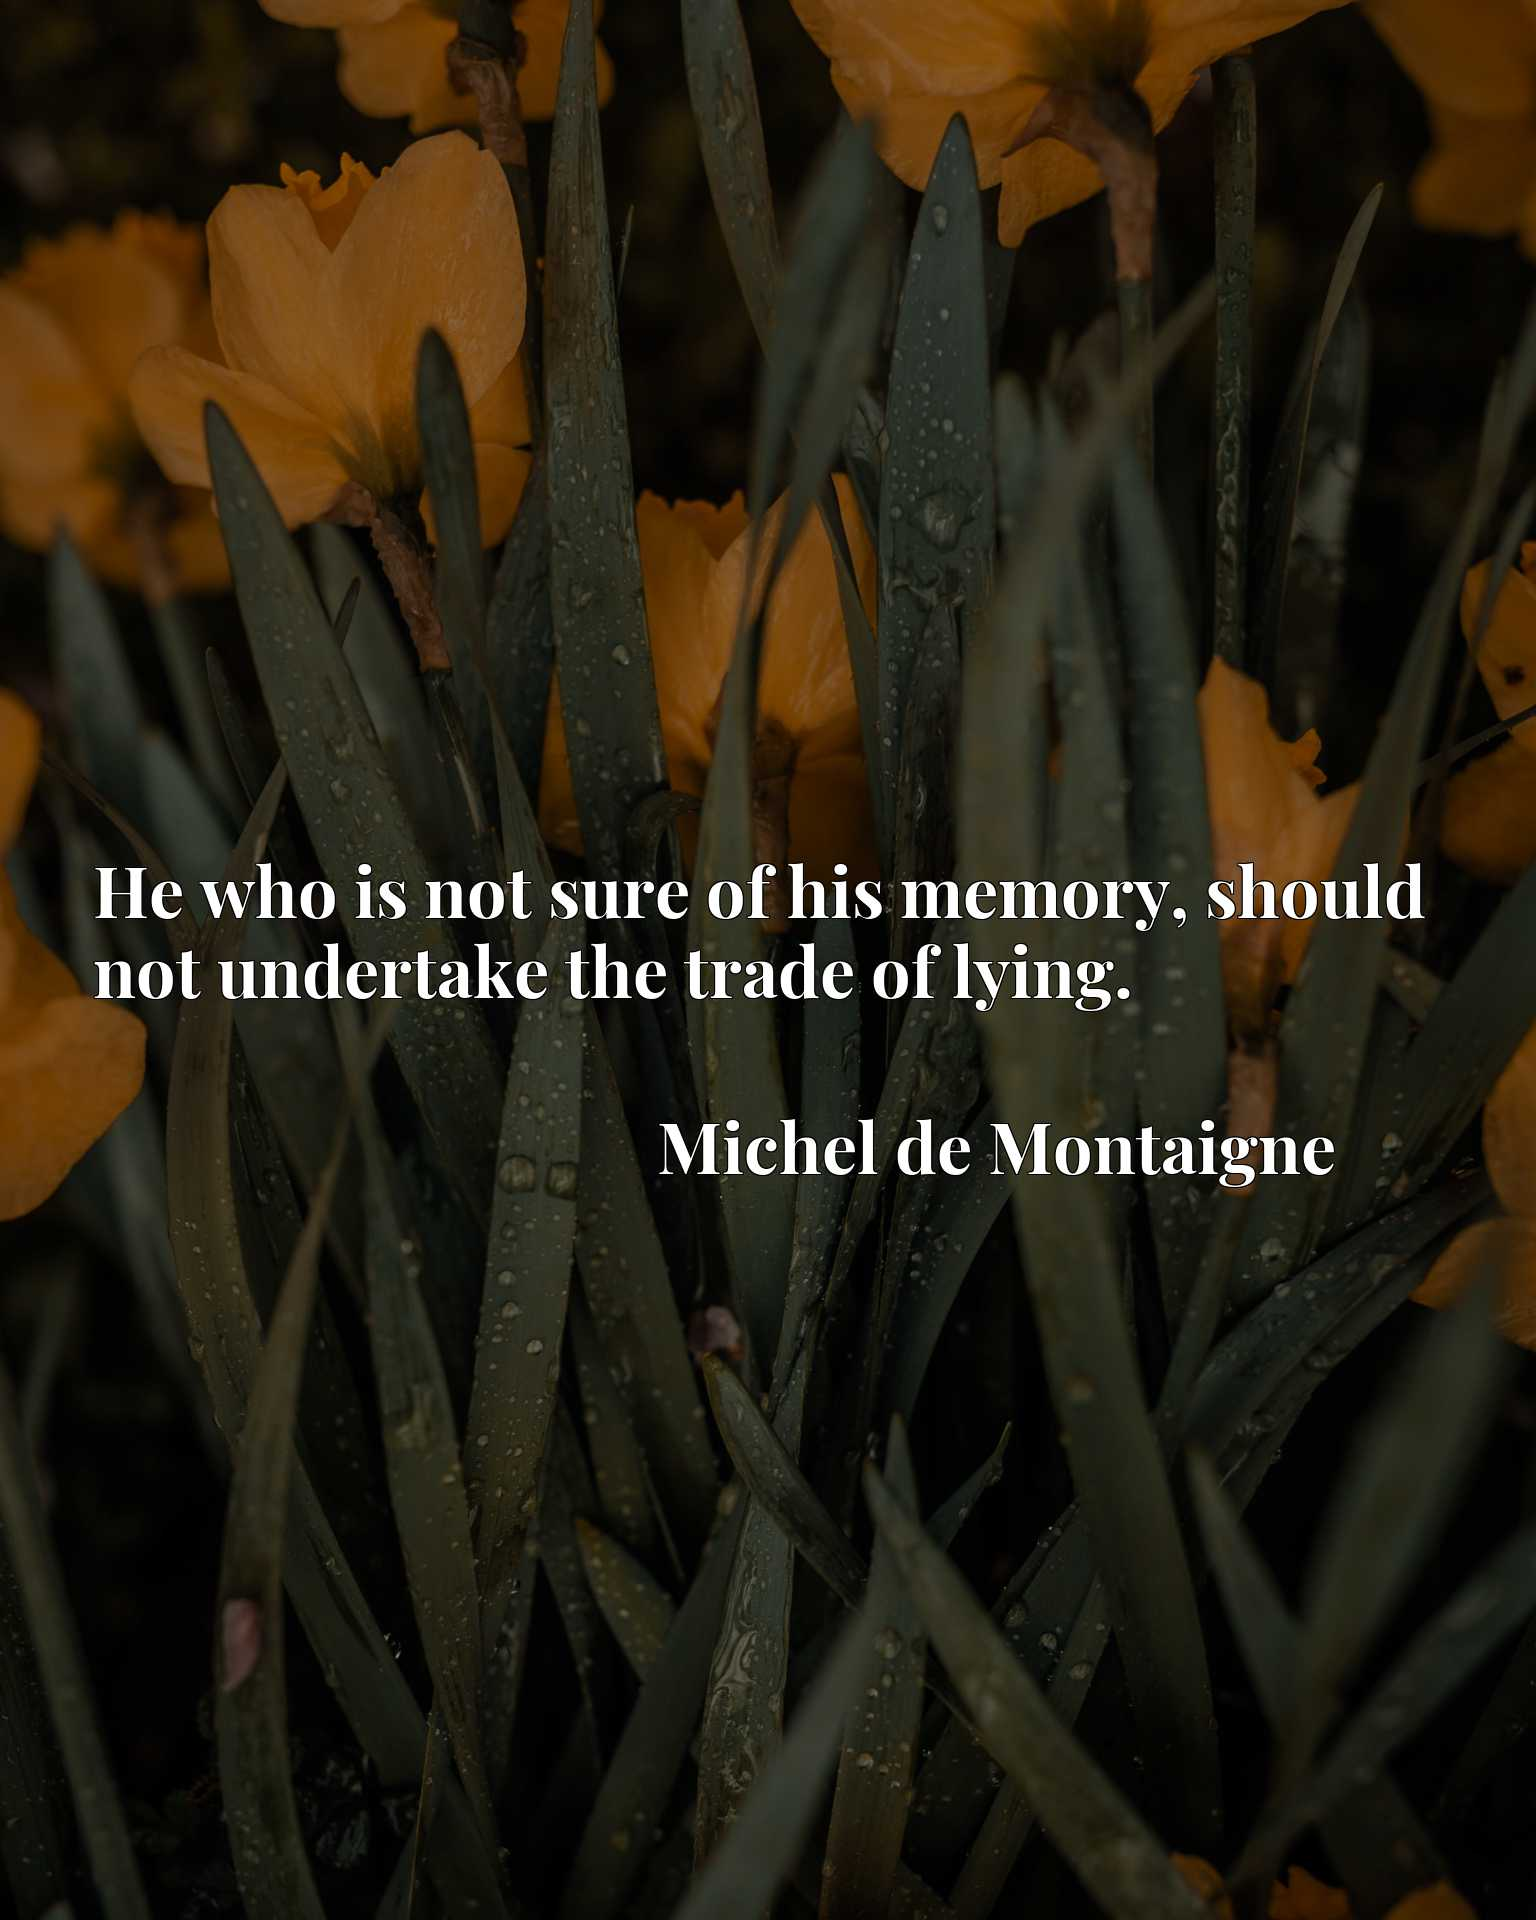 He who is not sure of his memory, should not undertake the trade of lying.